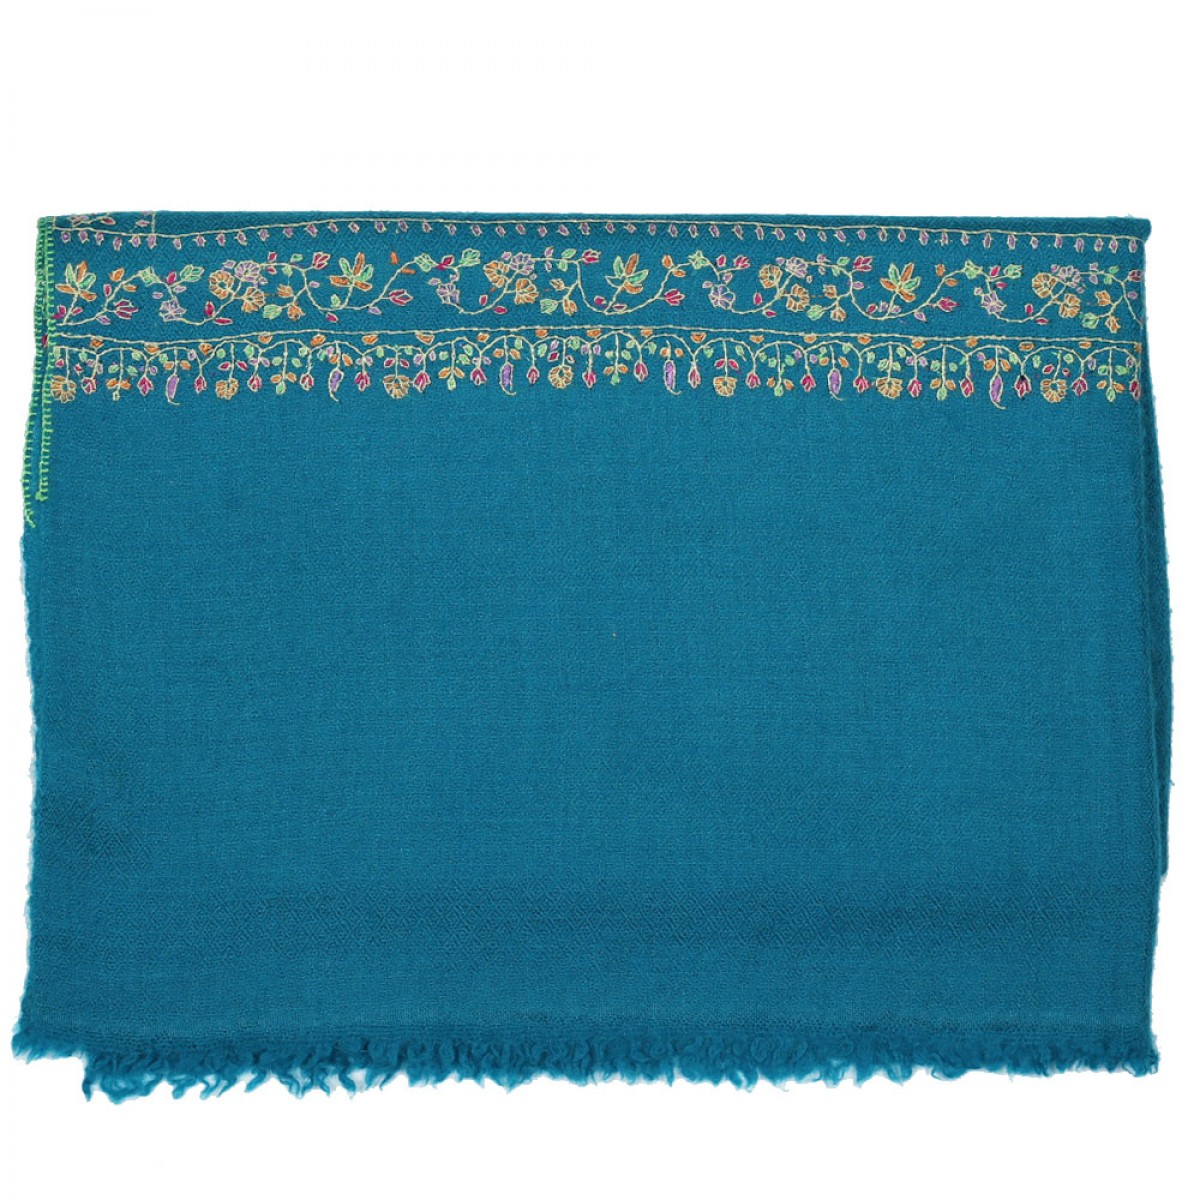 Embroidered Handloom Pashmina Stole - Teal